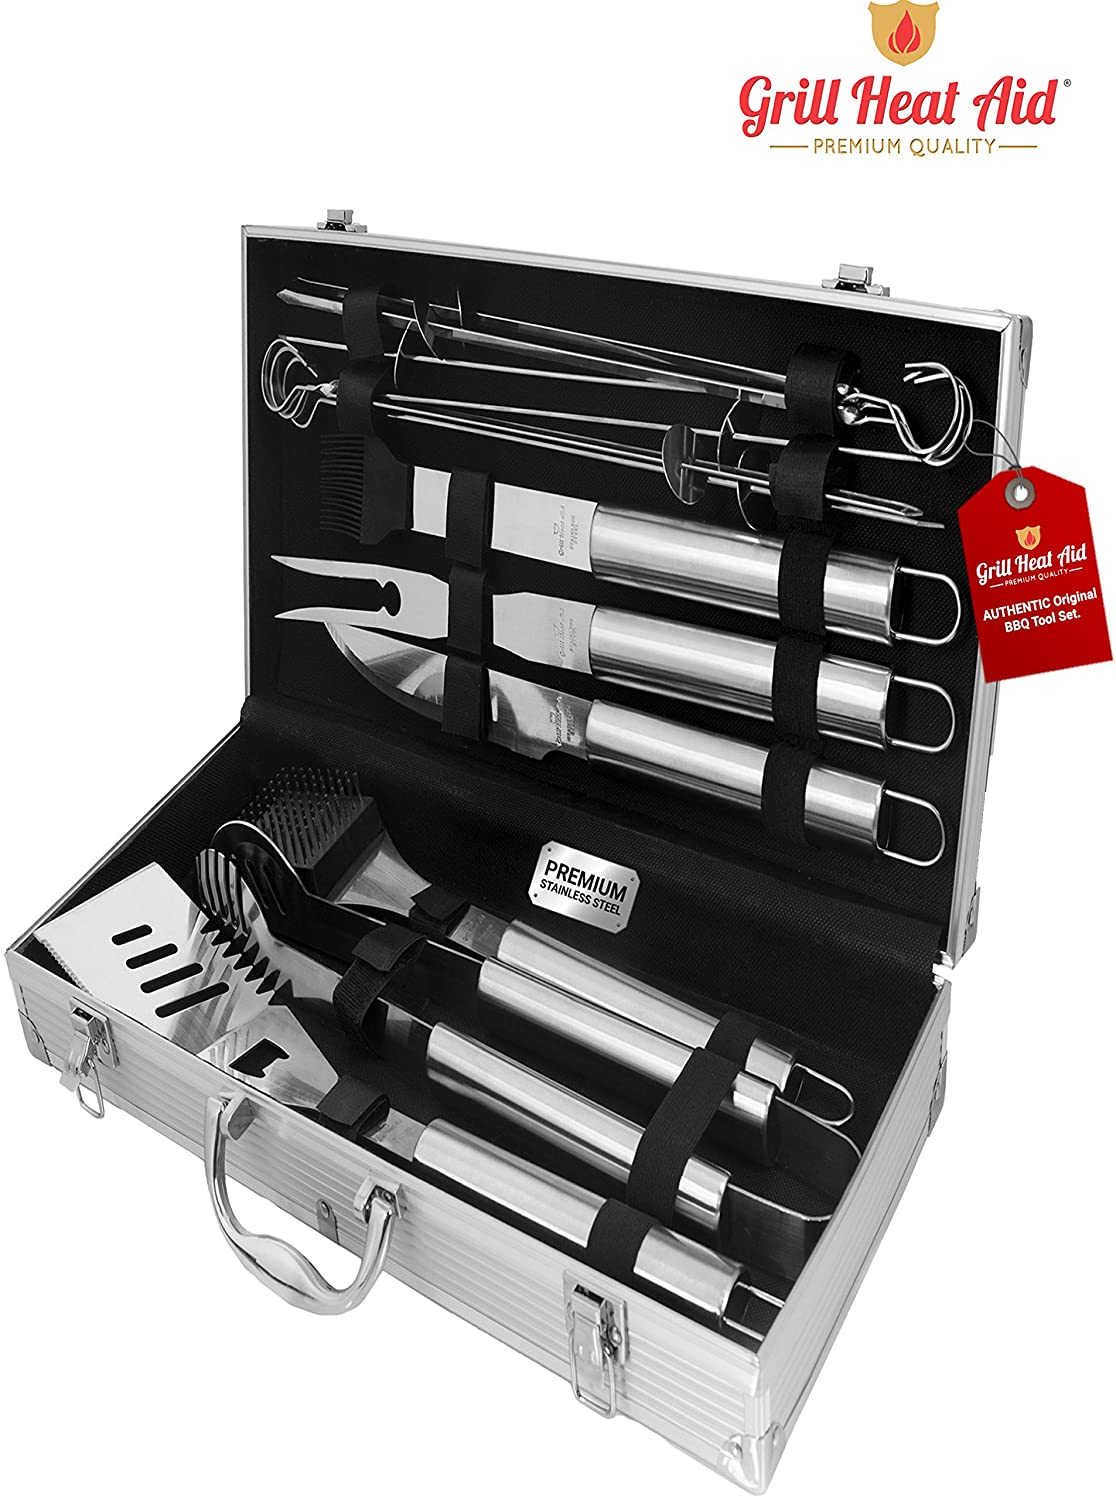 Stainless Steel BBQ Smoker Accessories Premium 12 Pc Set Sturdy, Well Weighted Precision Barbecue Grill Tool Set w XL Burn Rust Proof Design Construction Looks Sharp, Makes the Best Gift